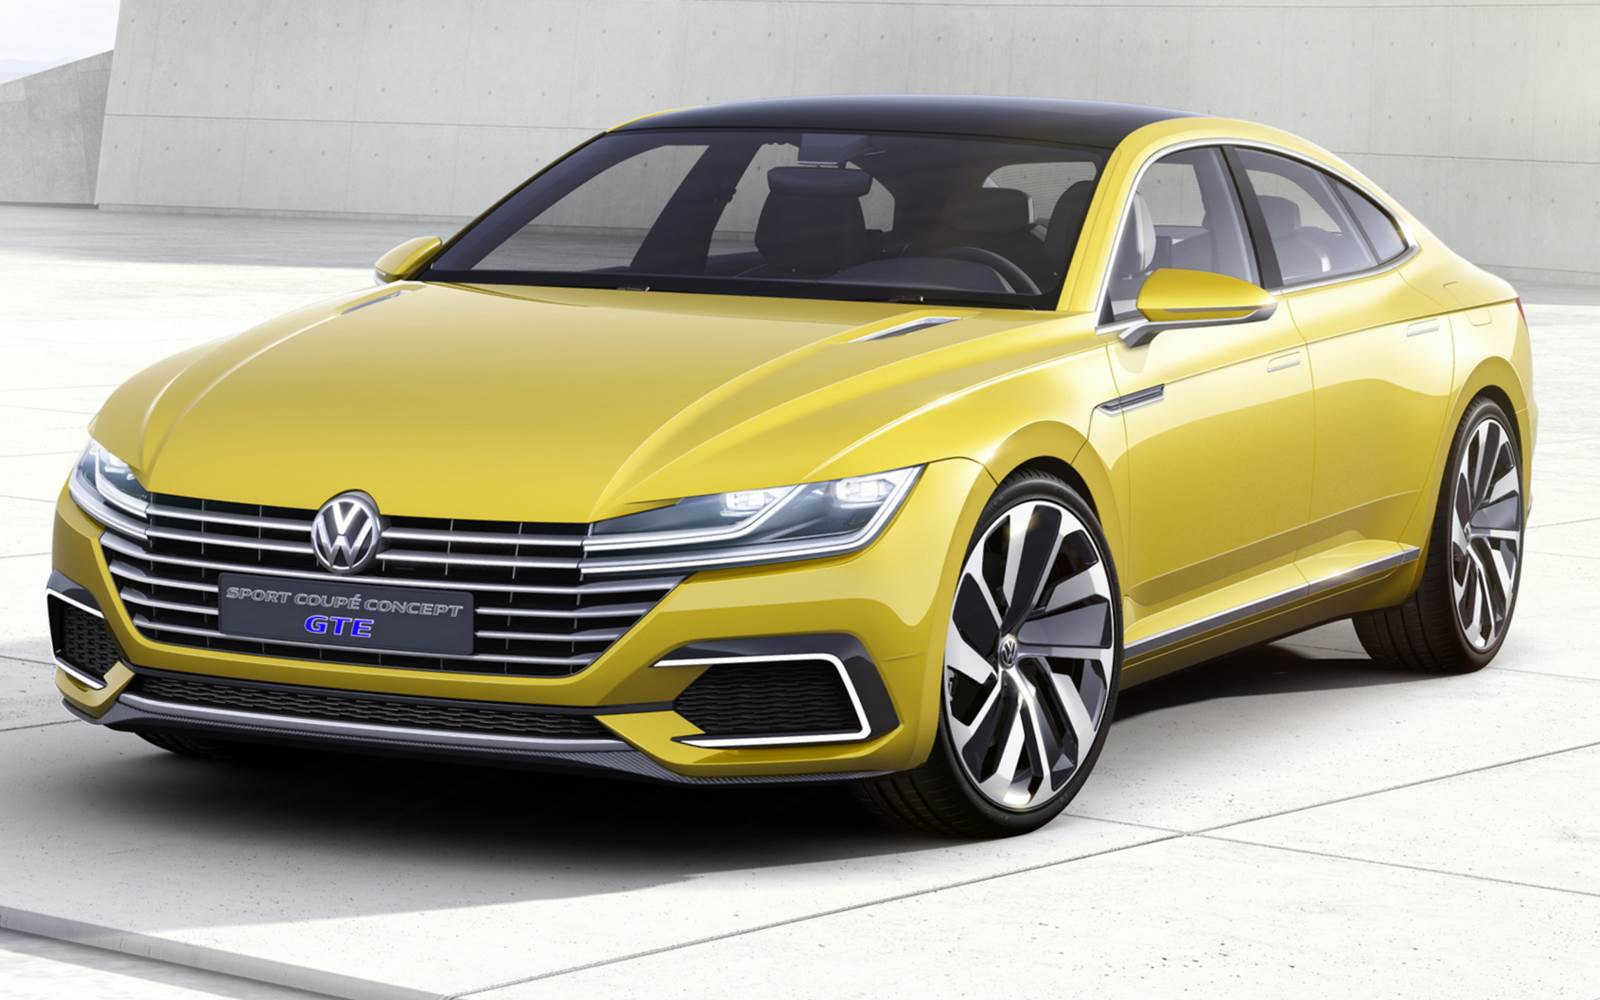 Vw Cross Coupe Gte Release Date >> Volkswagen Arteon Us Release Date And Design | Autos Post